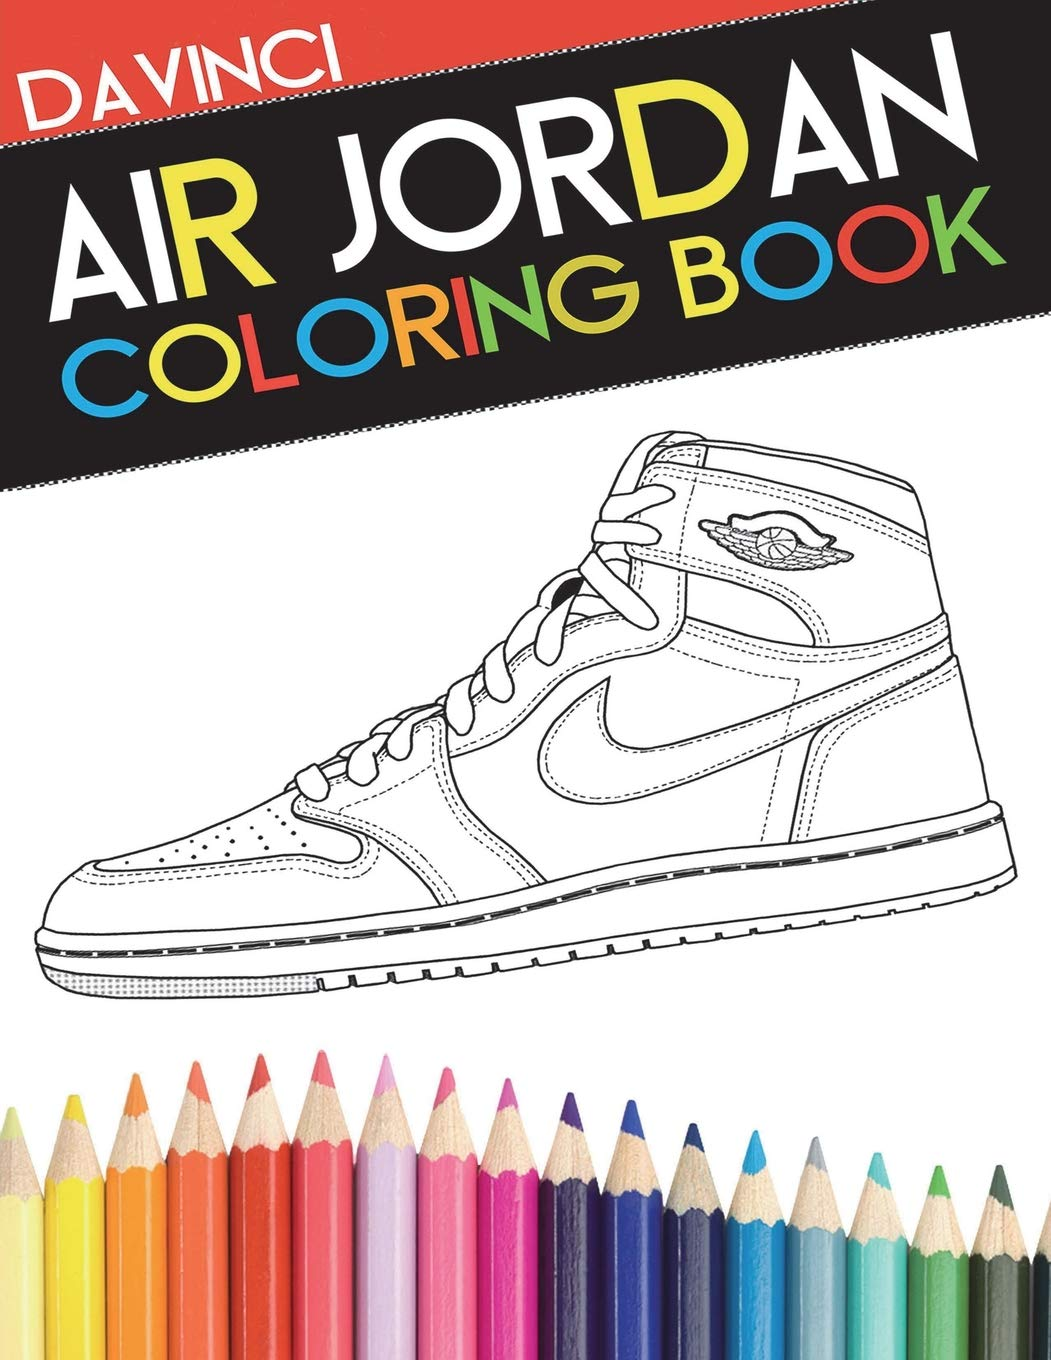 Air Jordan Coloring Book Sneaker Adult Coloring Book Davinci